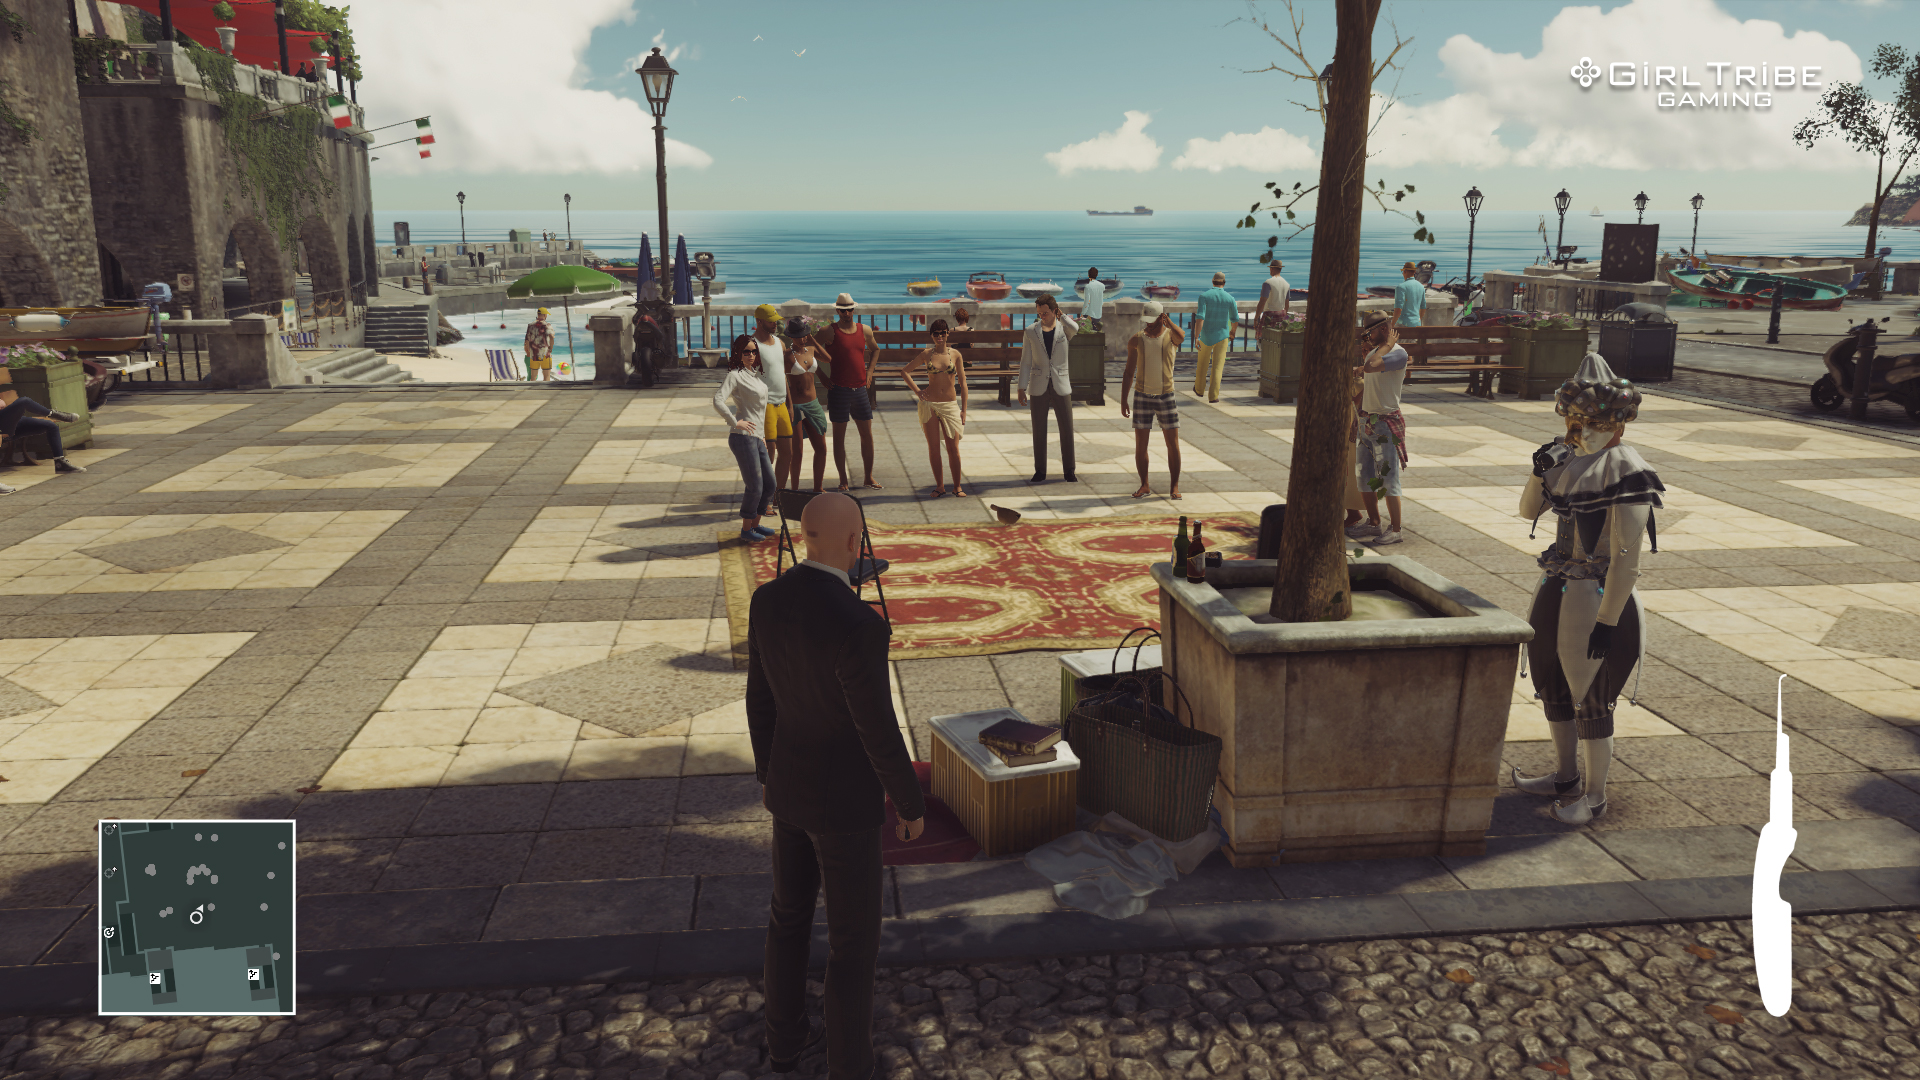 Hitman-ep-2-Screenshot-3-wb.jpg